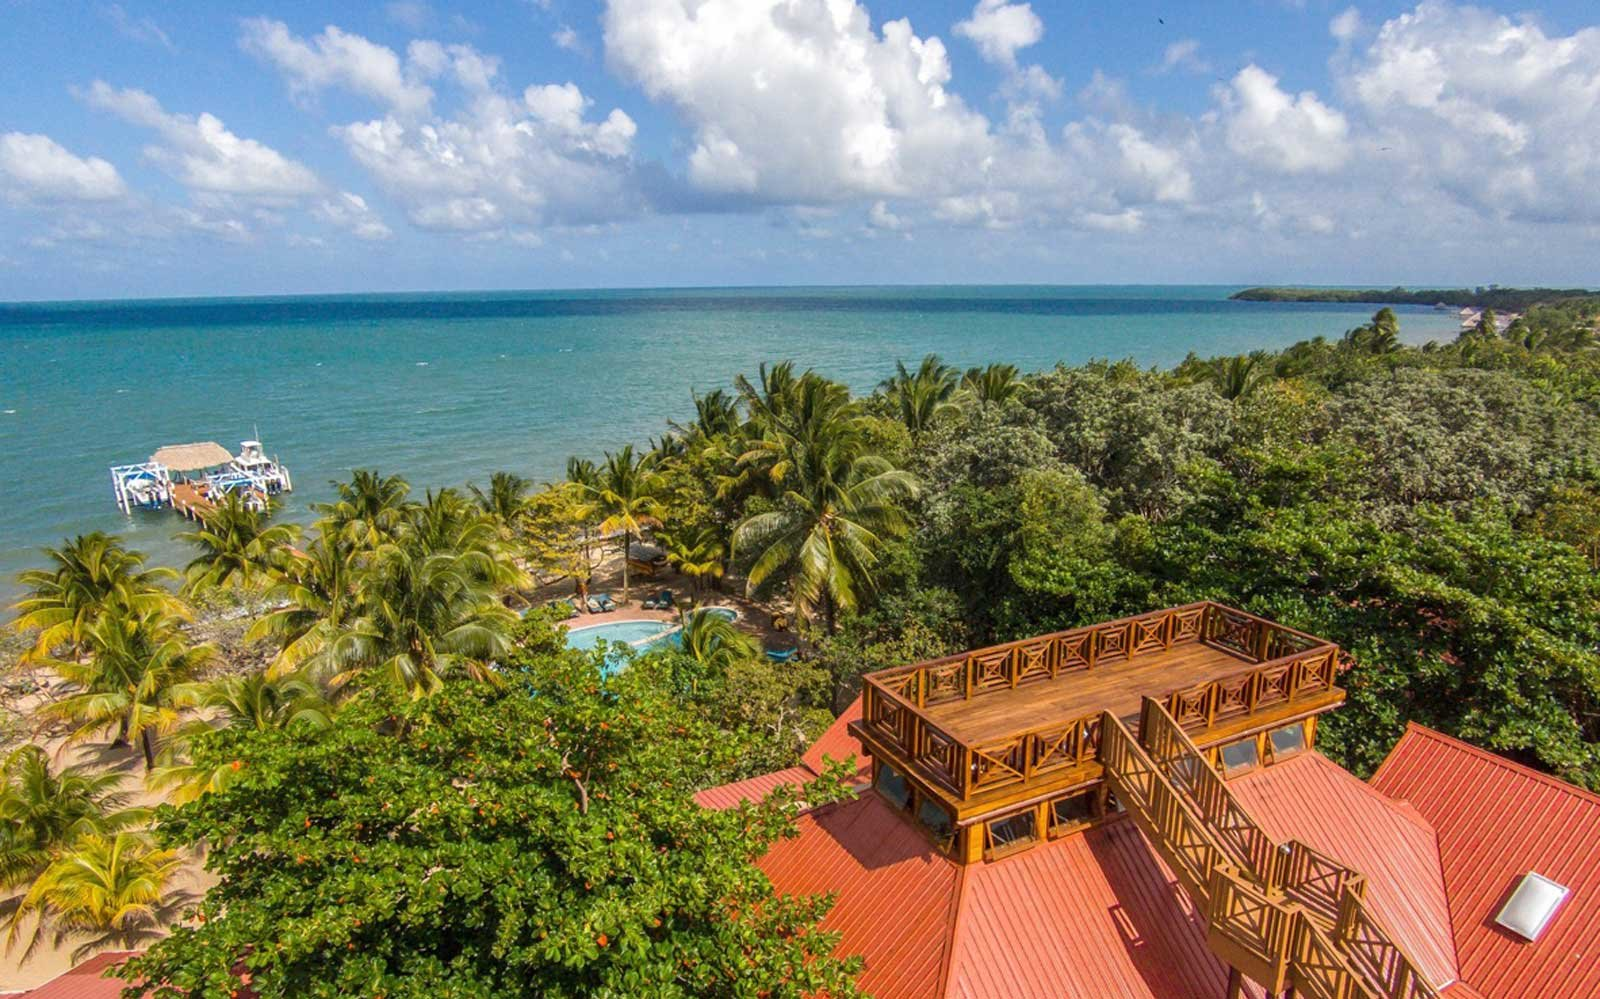 All-Inclusive Resorts in Belize